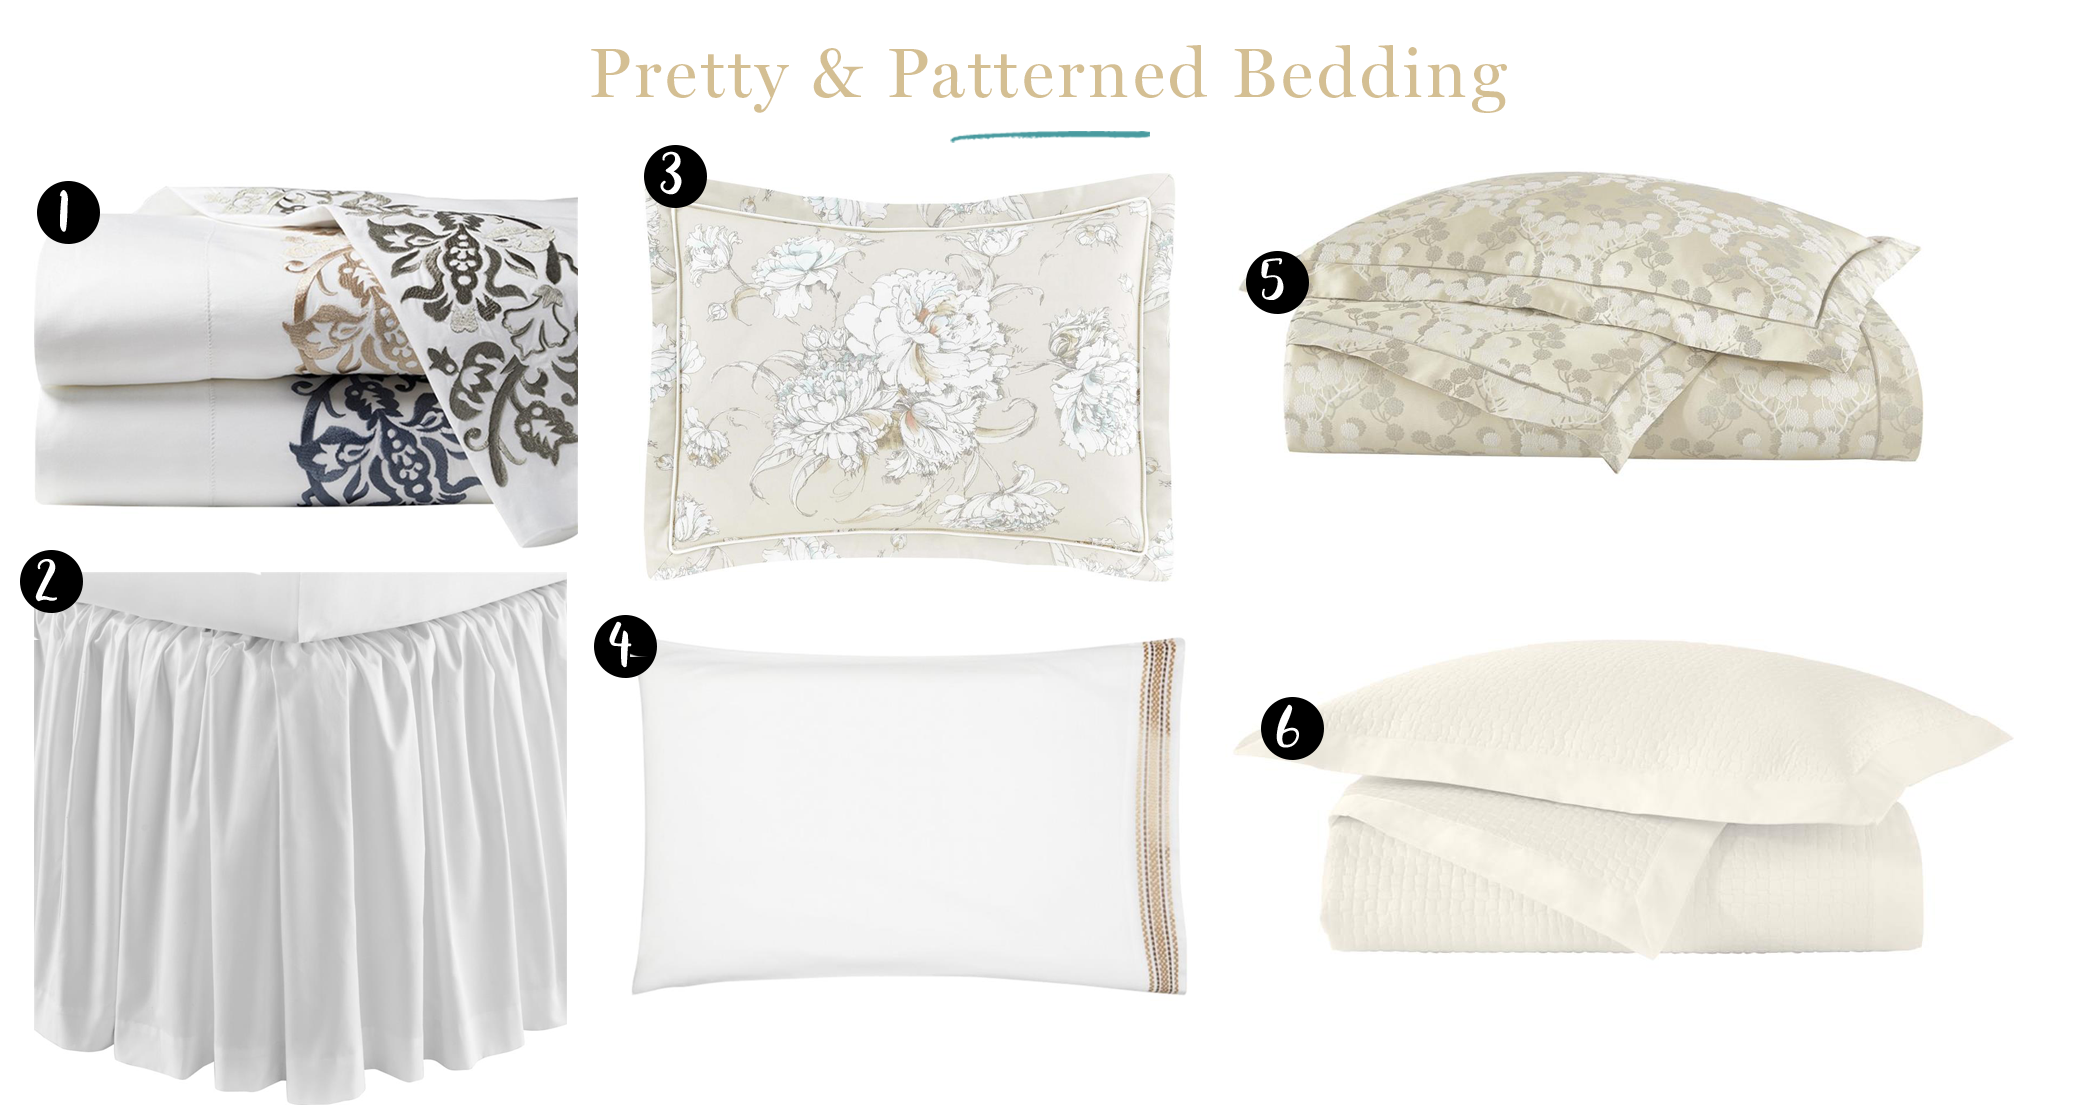 graphic of different types of bedding